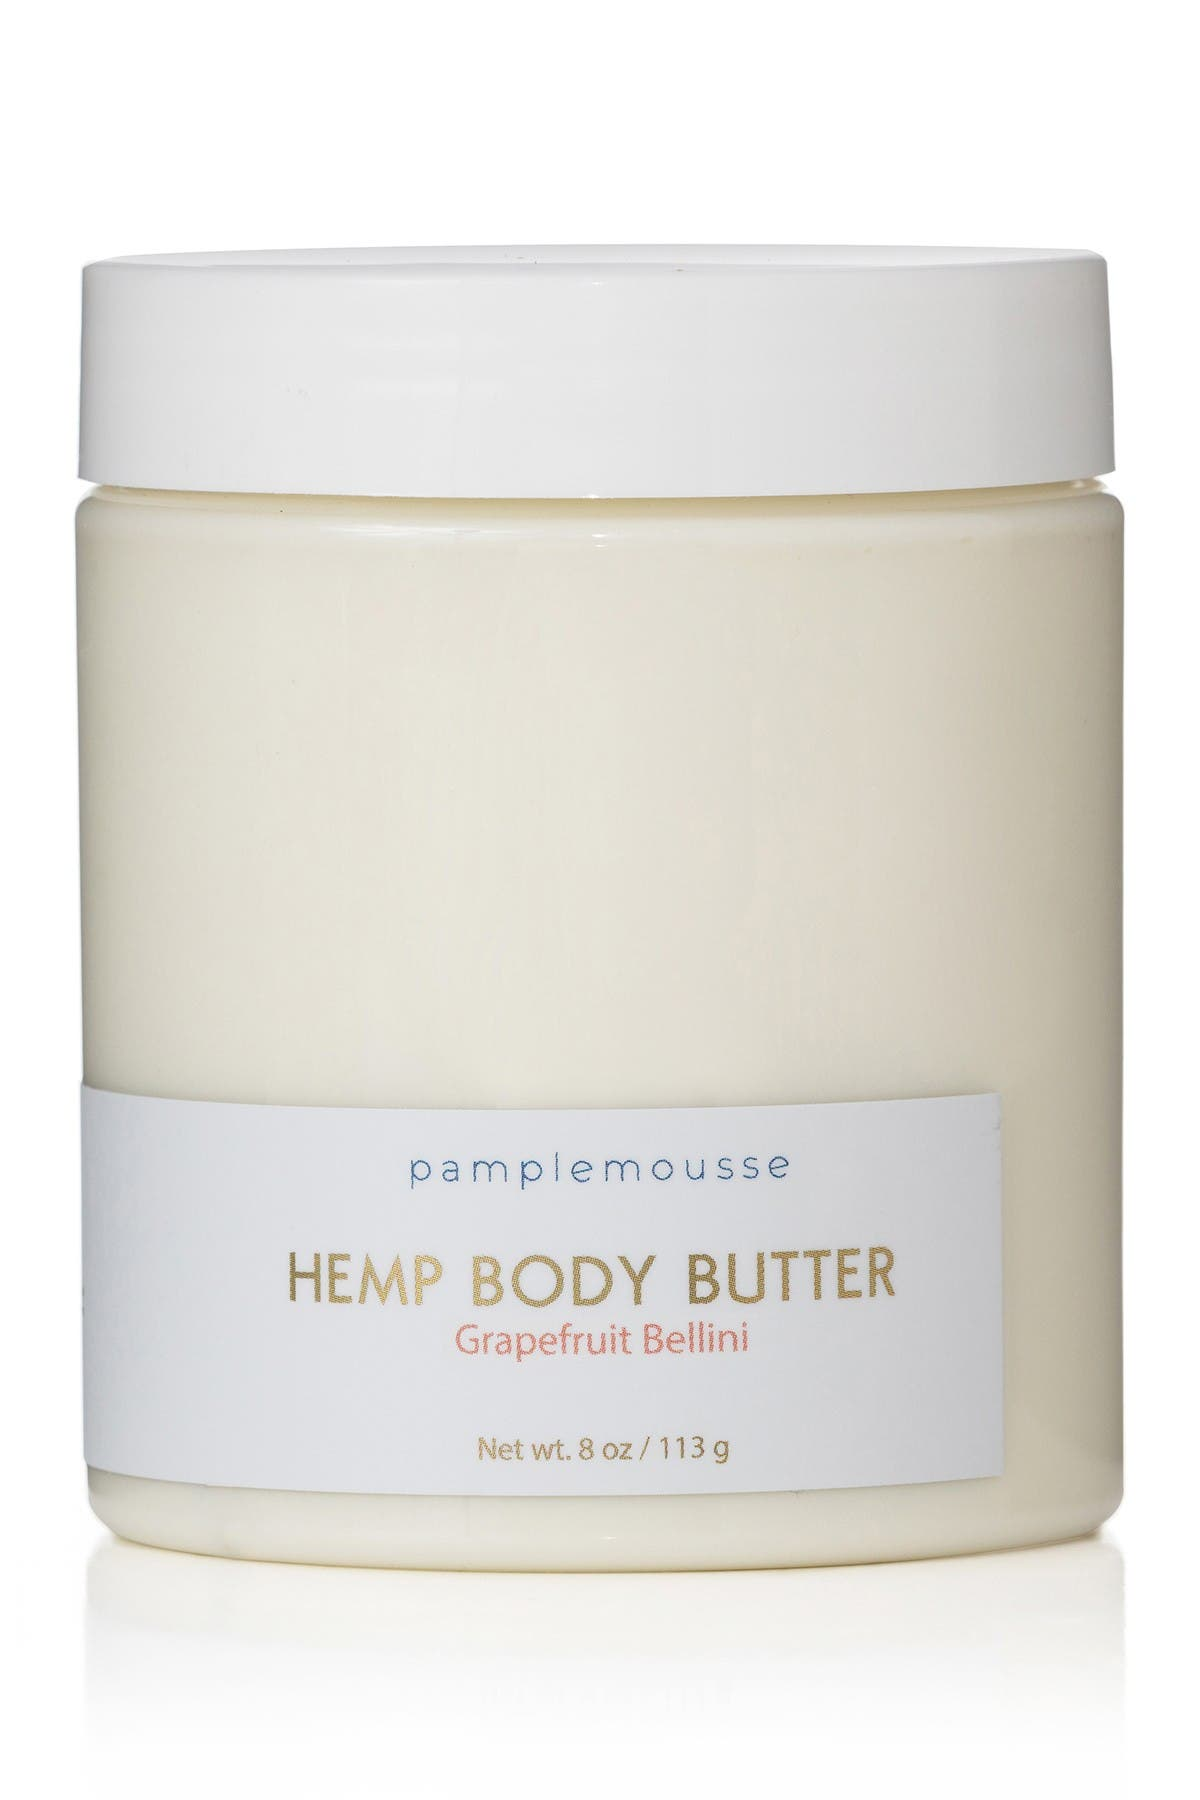 Image of Pamplemousse Hemp Body Butter - Grapefruit Bellini - 8 oz.